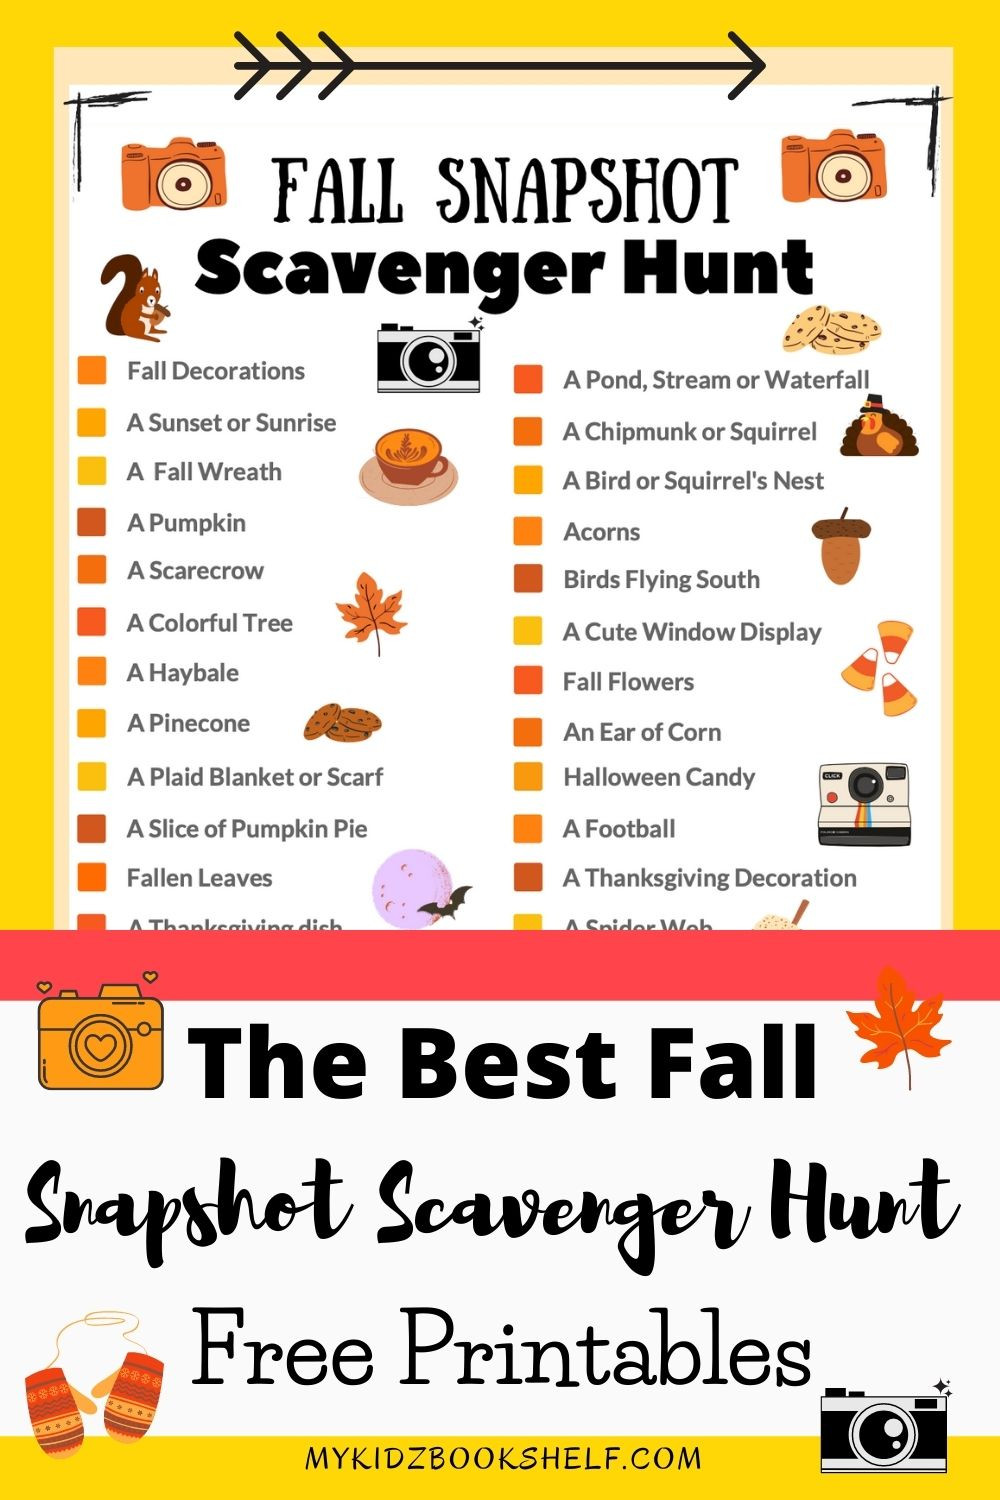 The Best Fall Scavenger Hunt Free Printable with fall list and pictures